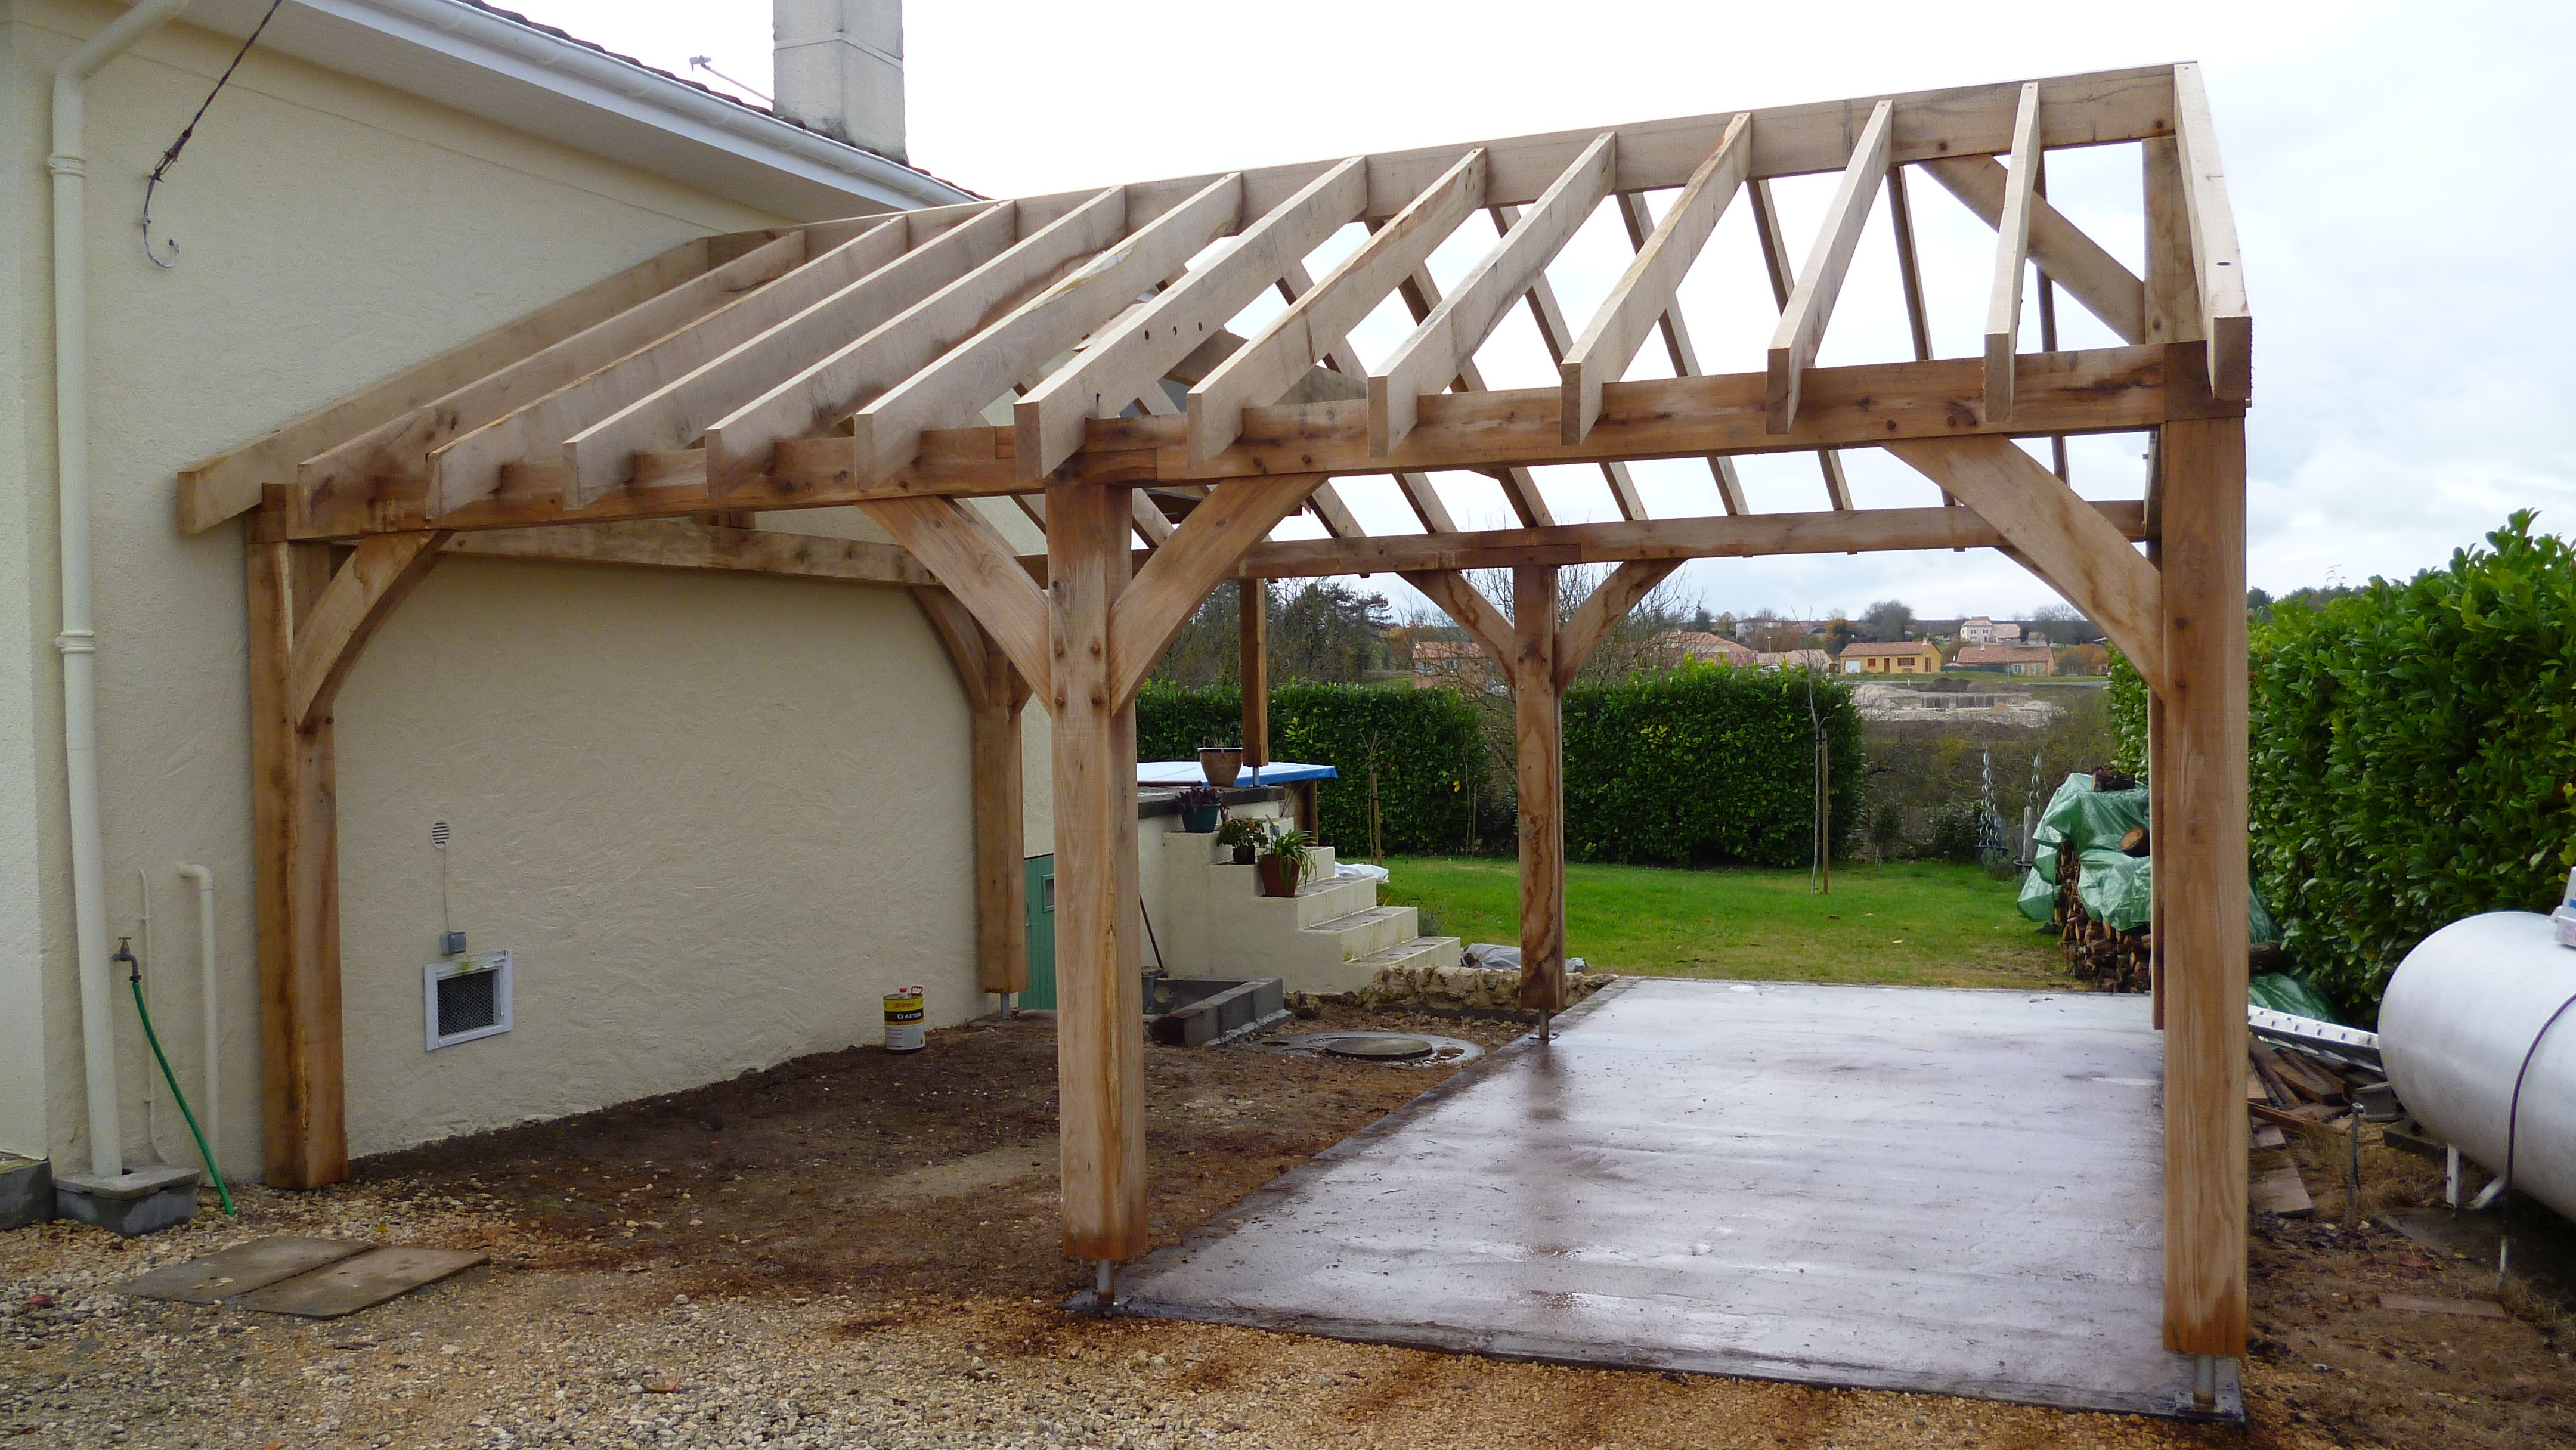 Oak Car Port In Dordogne Carport Designs Carport Plans Wooden Carports